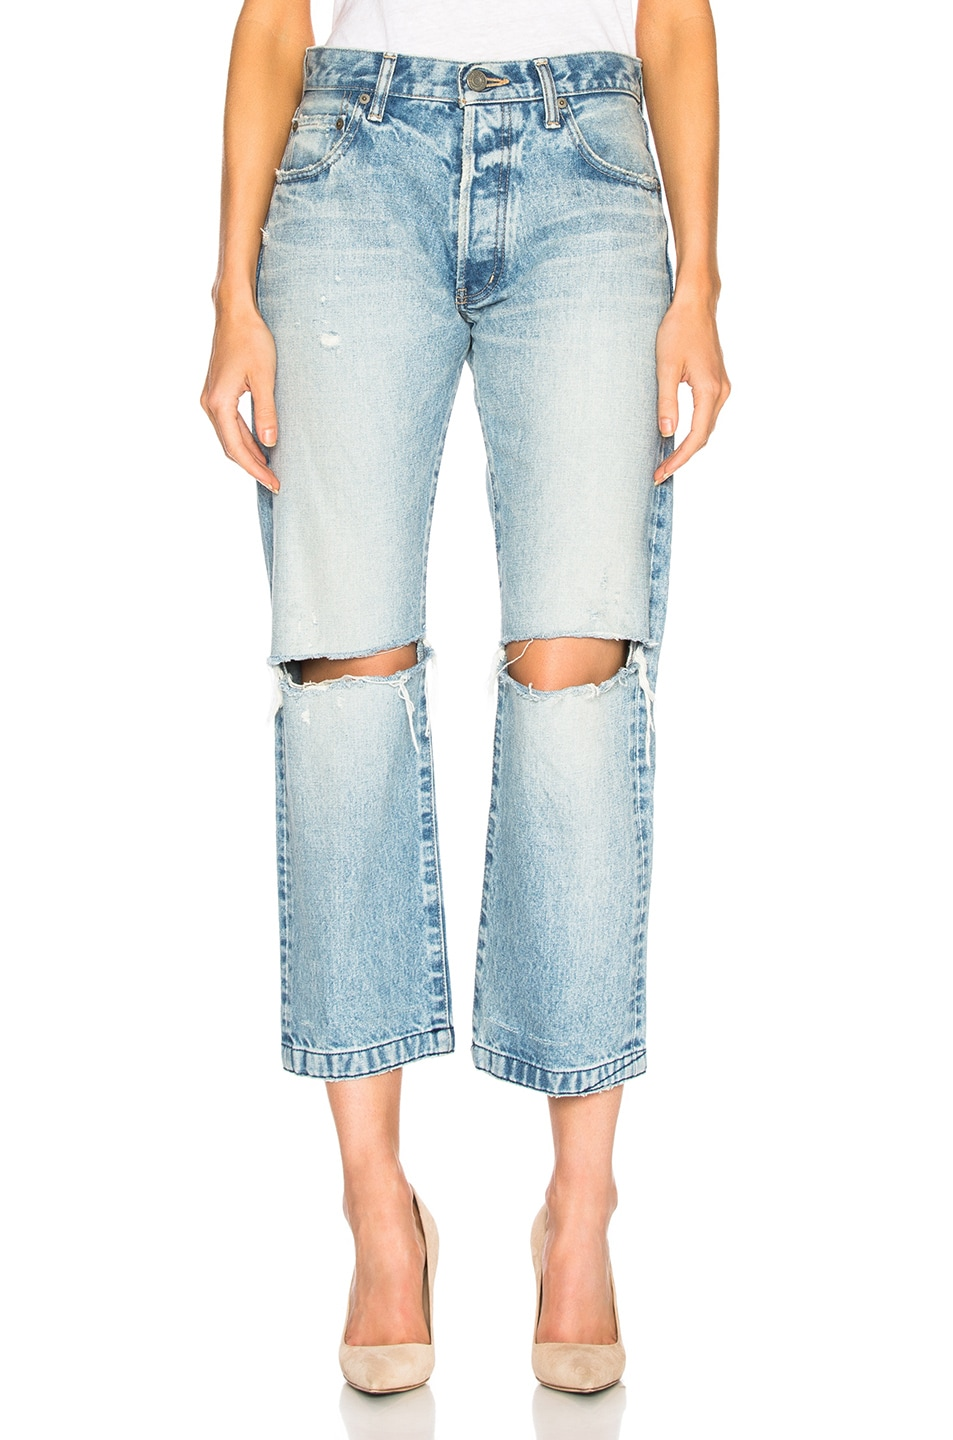 MOUSSY Moussy Vintage Distressed Straight Jeans - Blue